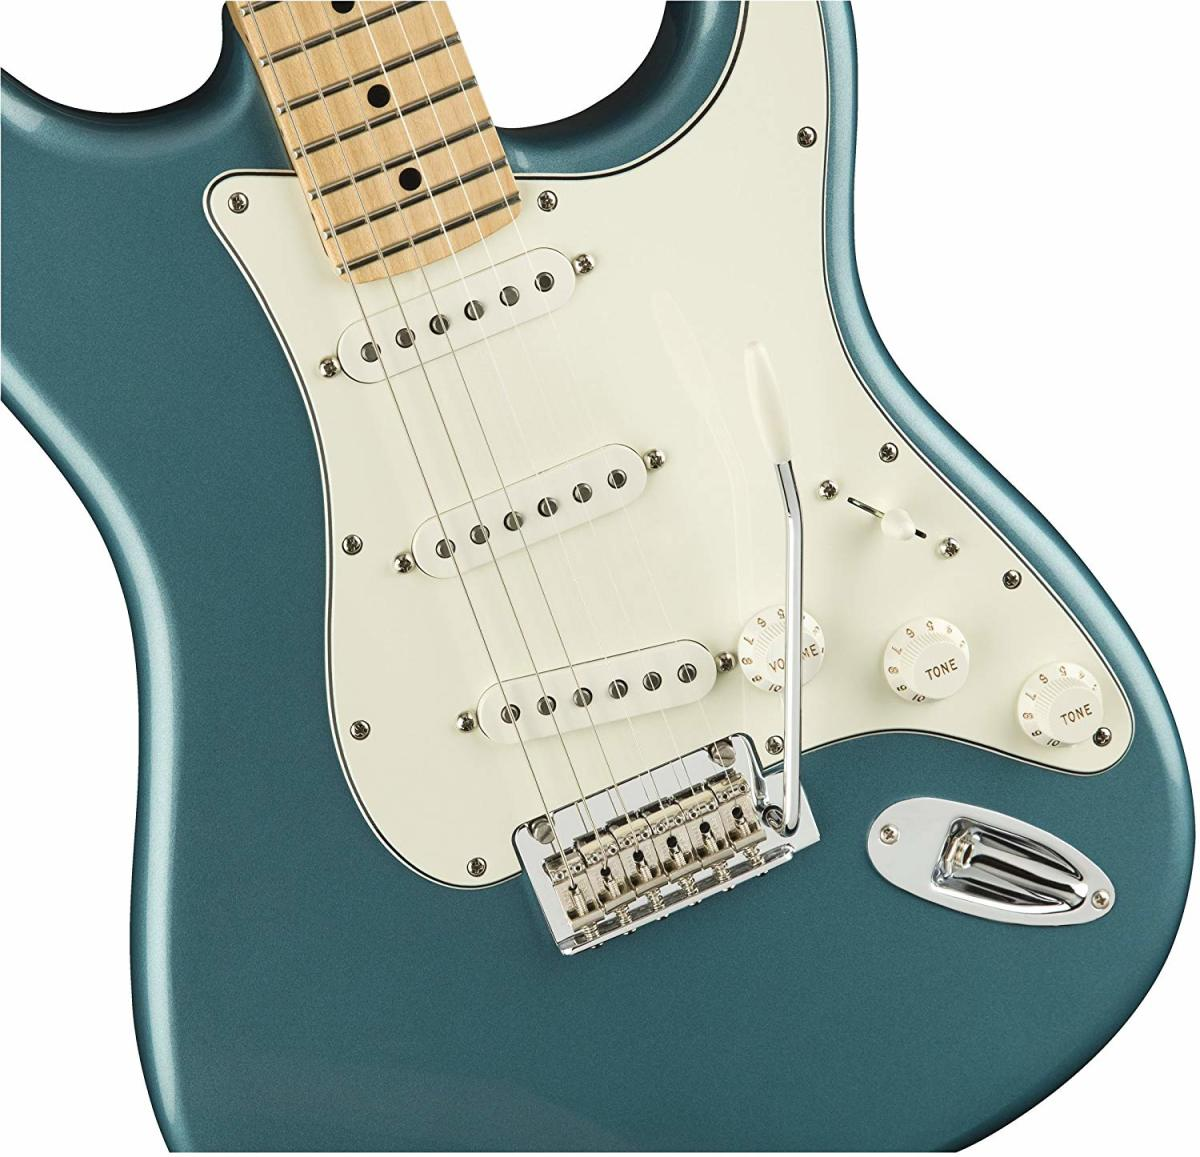 Strat Hss Noise Less Wiring Diagram